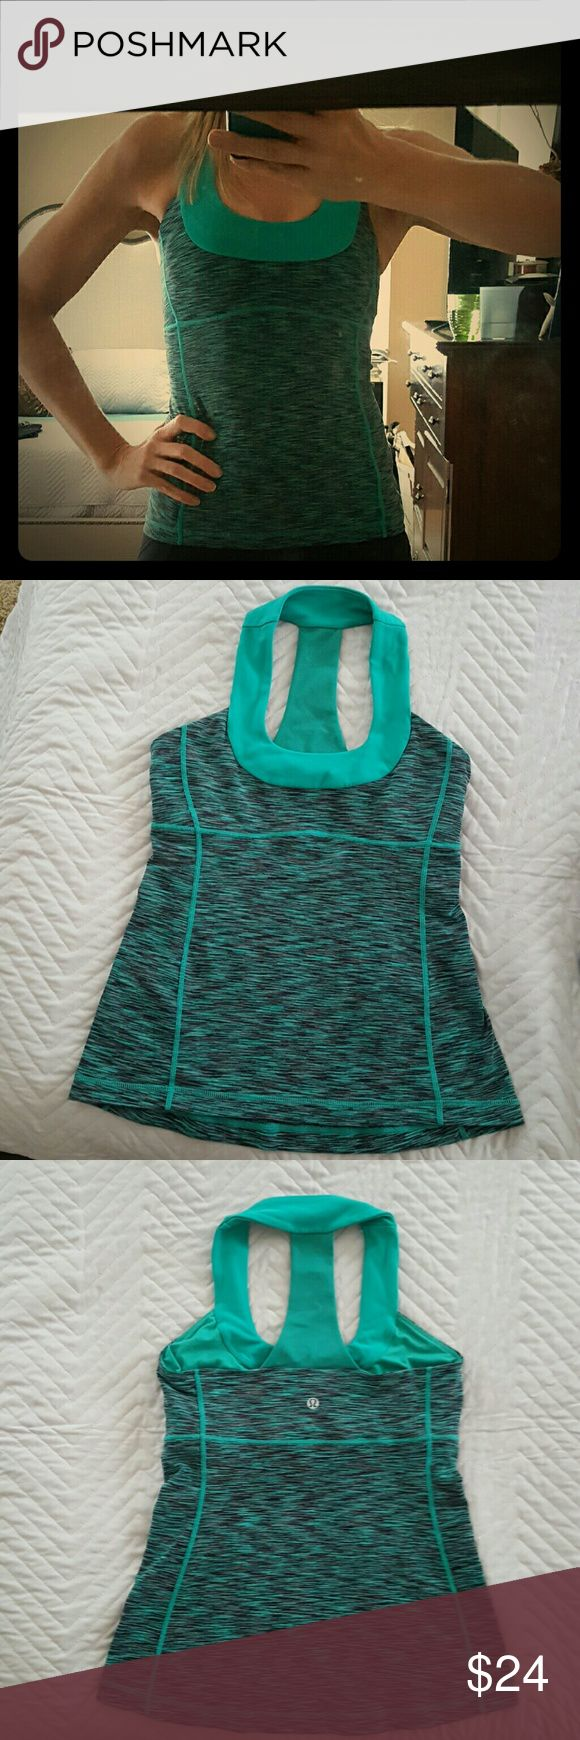 Lululemin Racer-back Scoop-neck Tank Top Great tank worn a handful of times. Mesh racerback with a built in bra and place for pads. lululemon athletica Tops Tank Tops